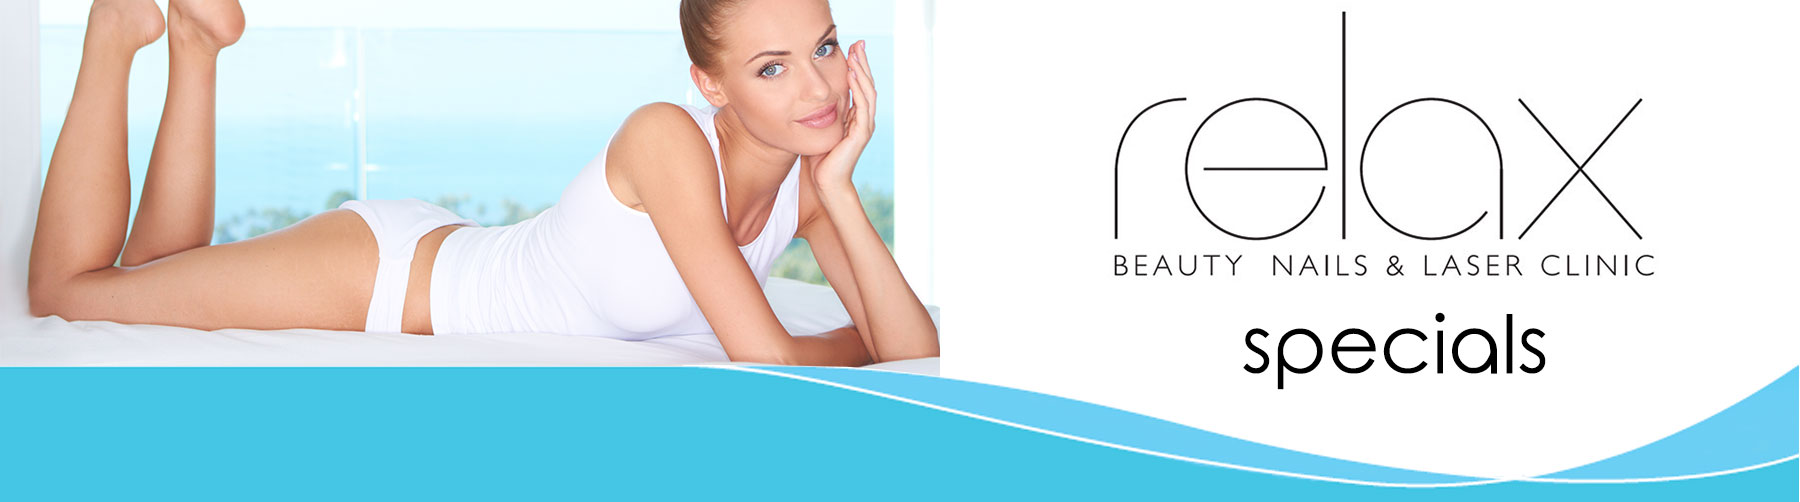 Relax Beauty Clinic - Beauty Specials